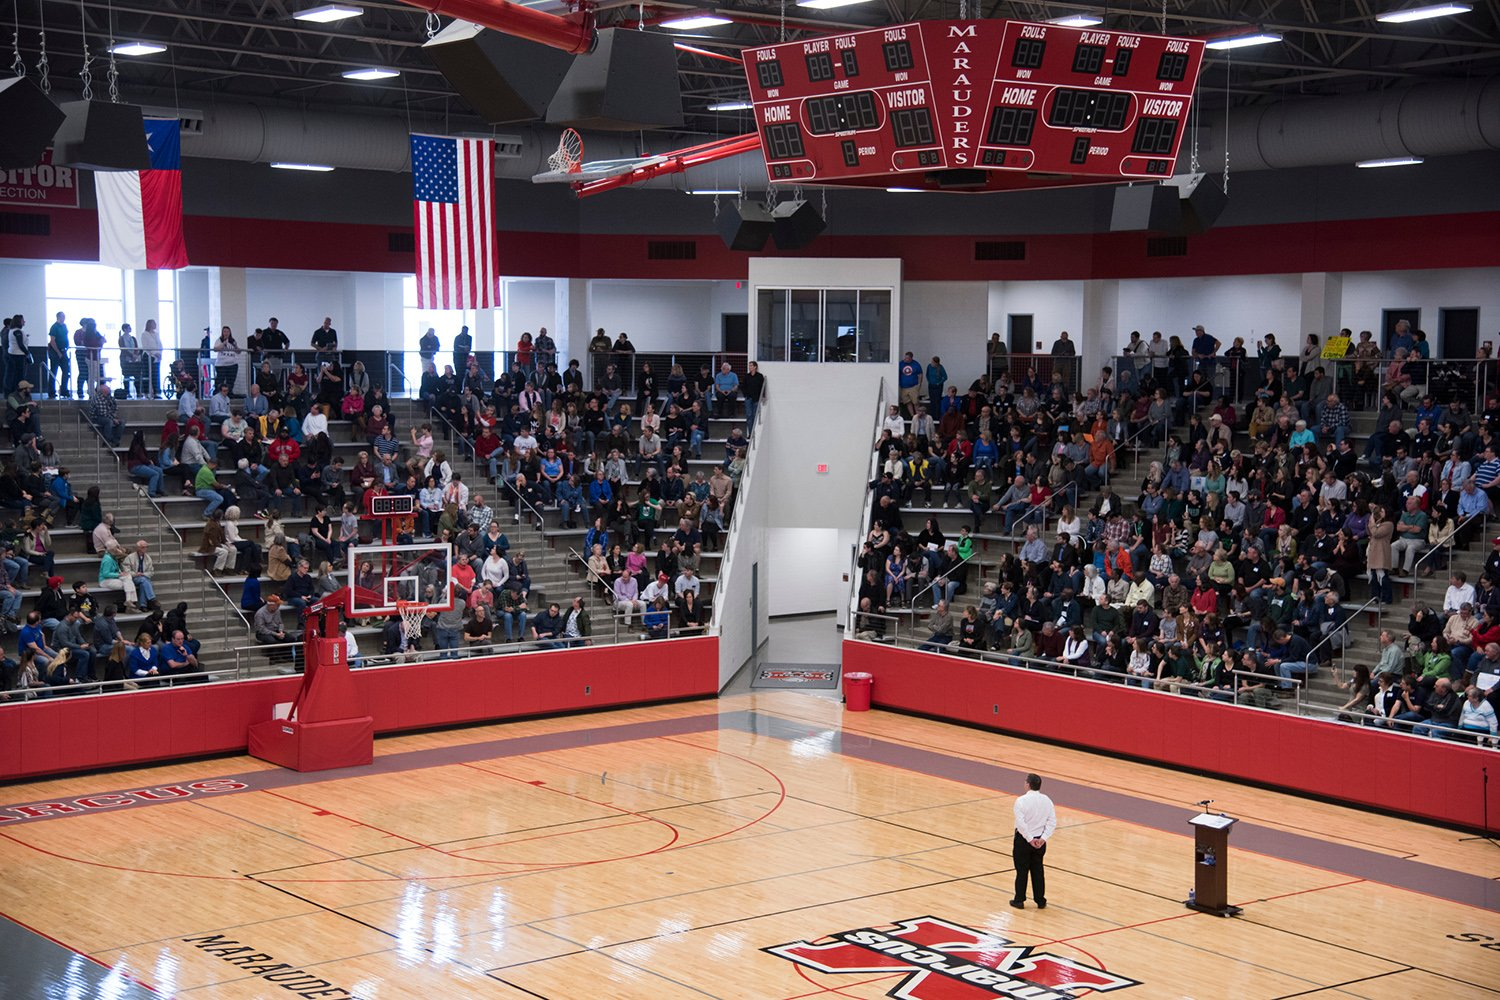 People fill the gym at Flower Mound Marcus High School for a town hall meeting held by U.S. Rep. Michael C. Burgess, R-Lewisville, on March 4, 2017.